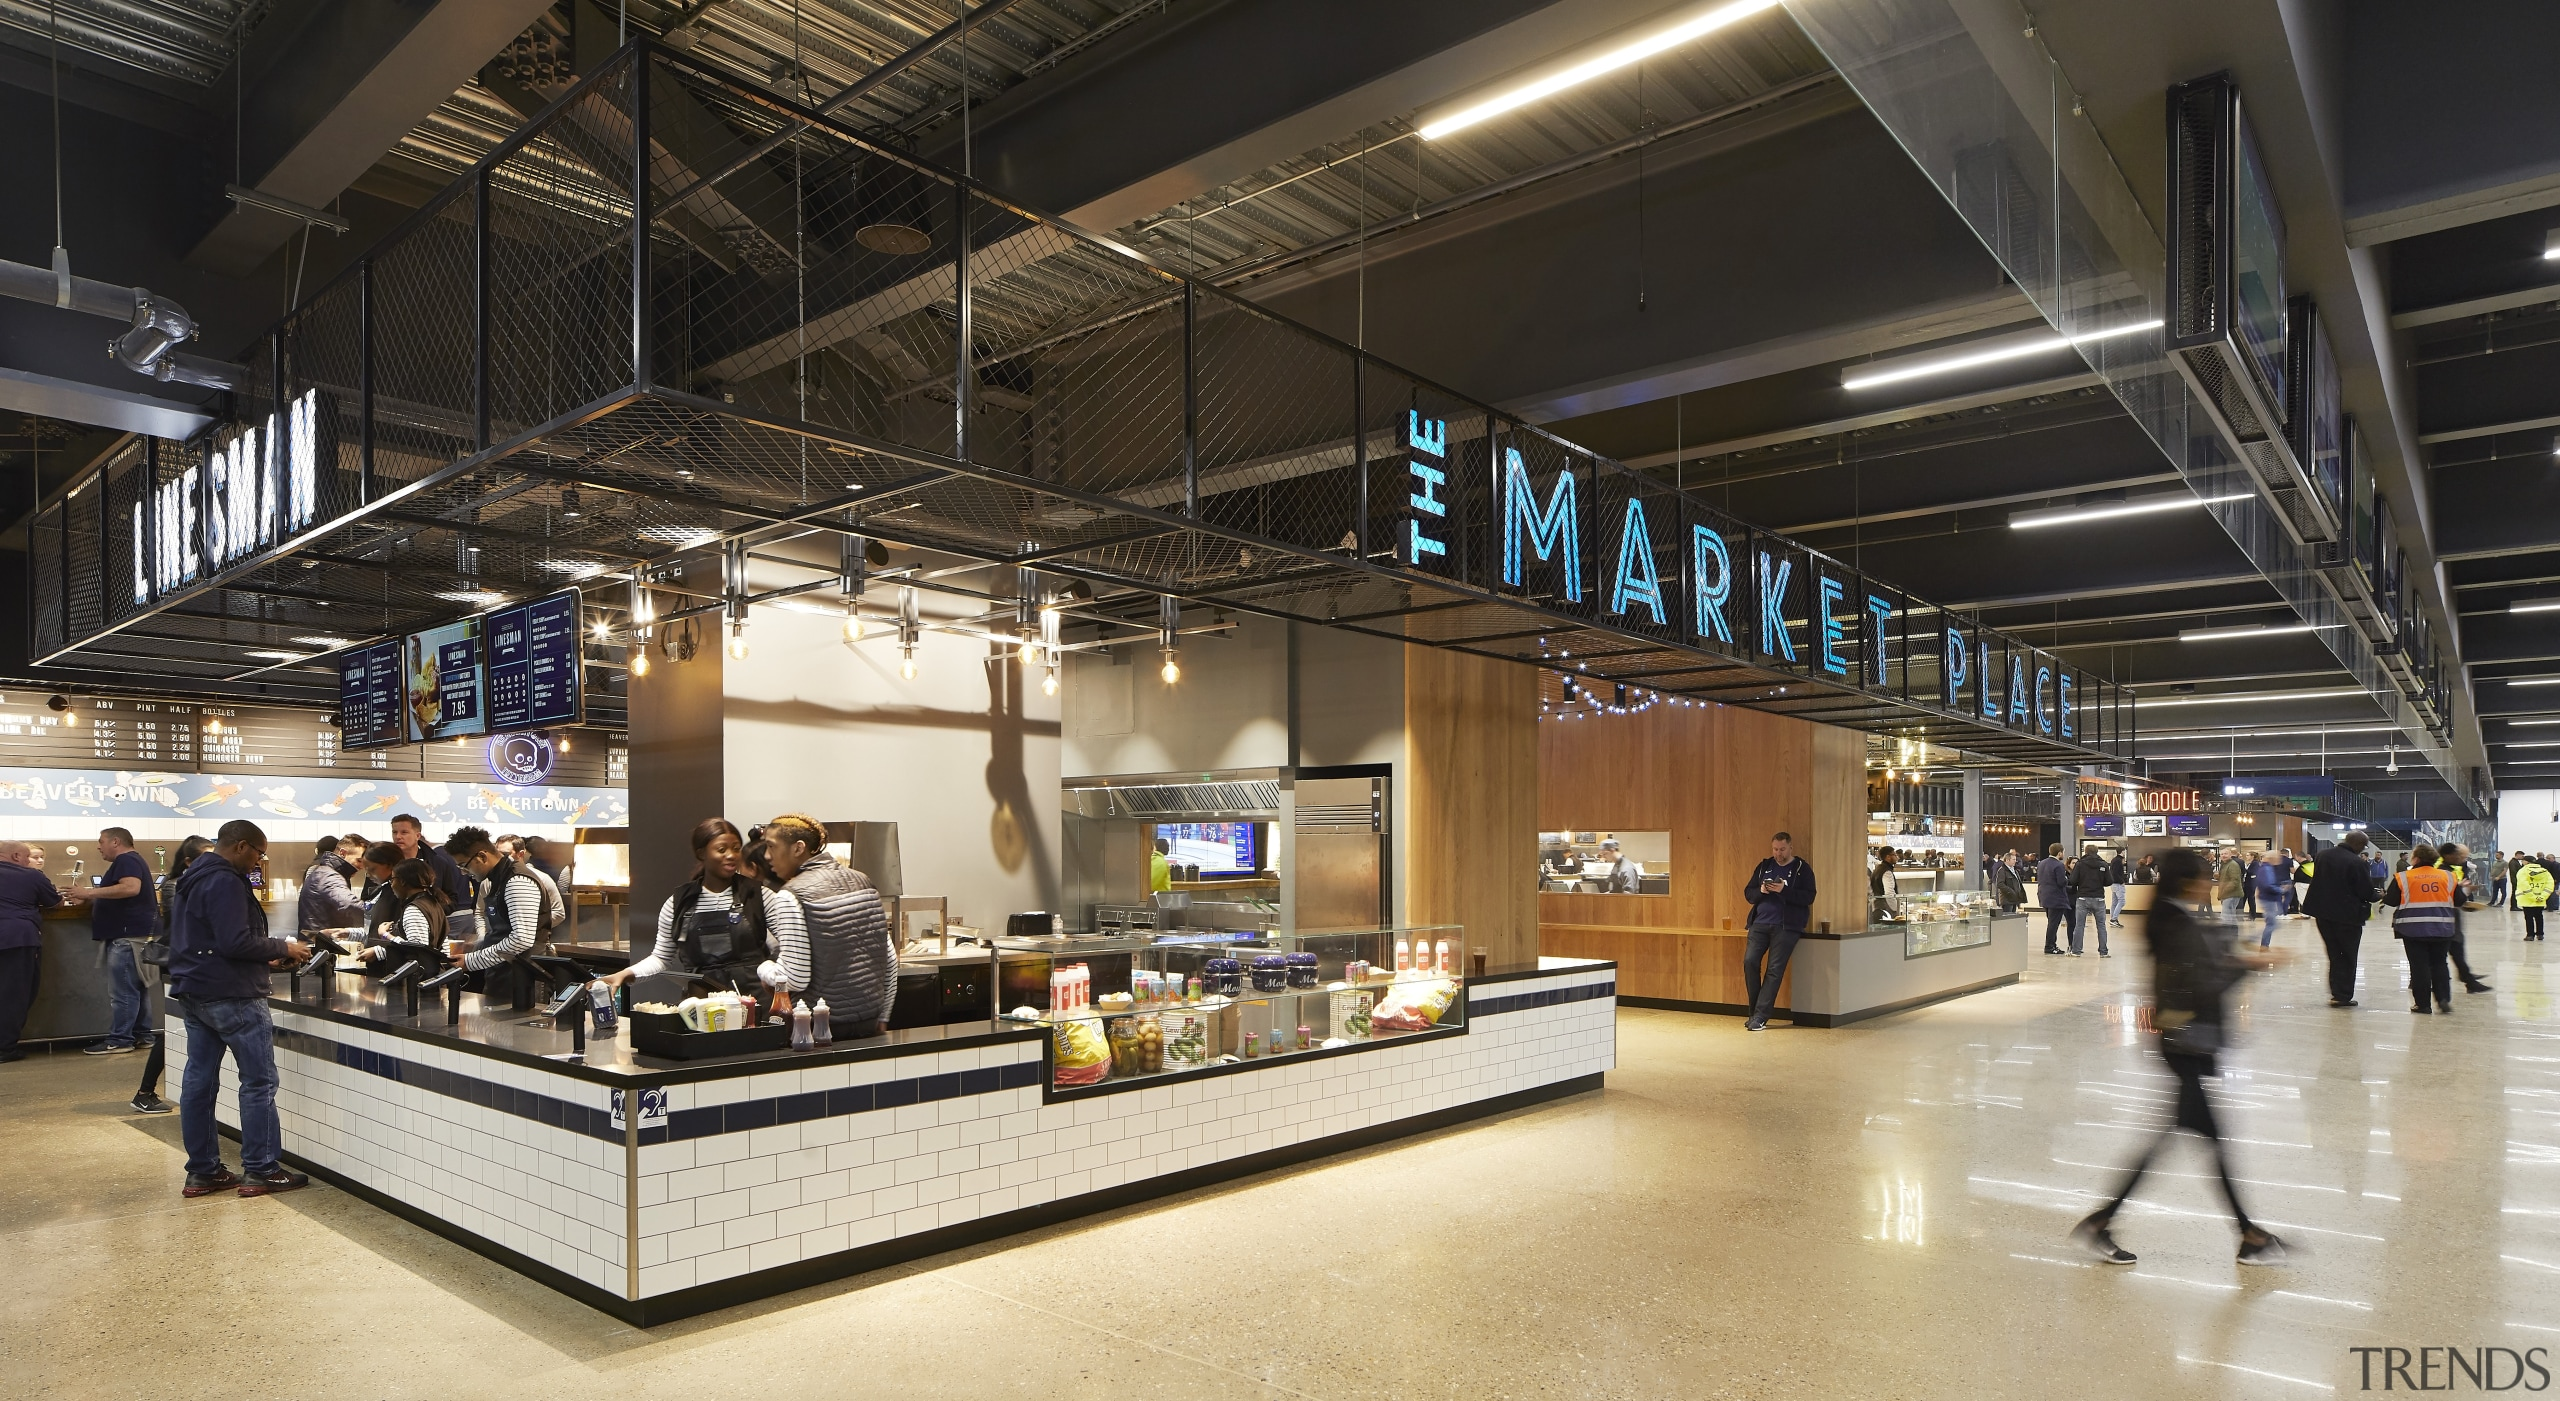 The provision of a market place linked to airport, airport terminal, architecture, building, infrastructure, interior design, black